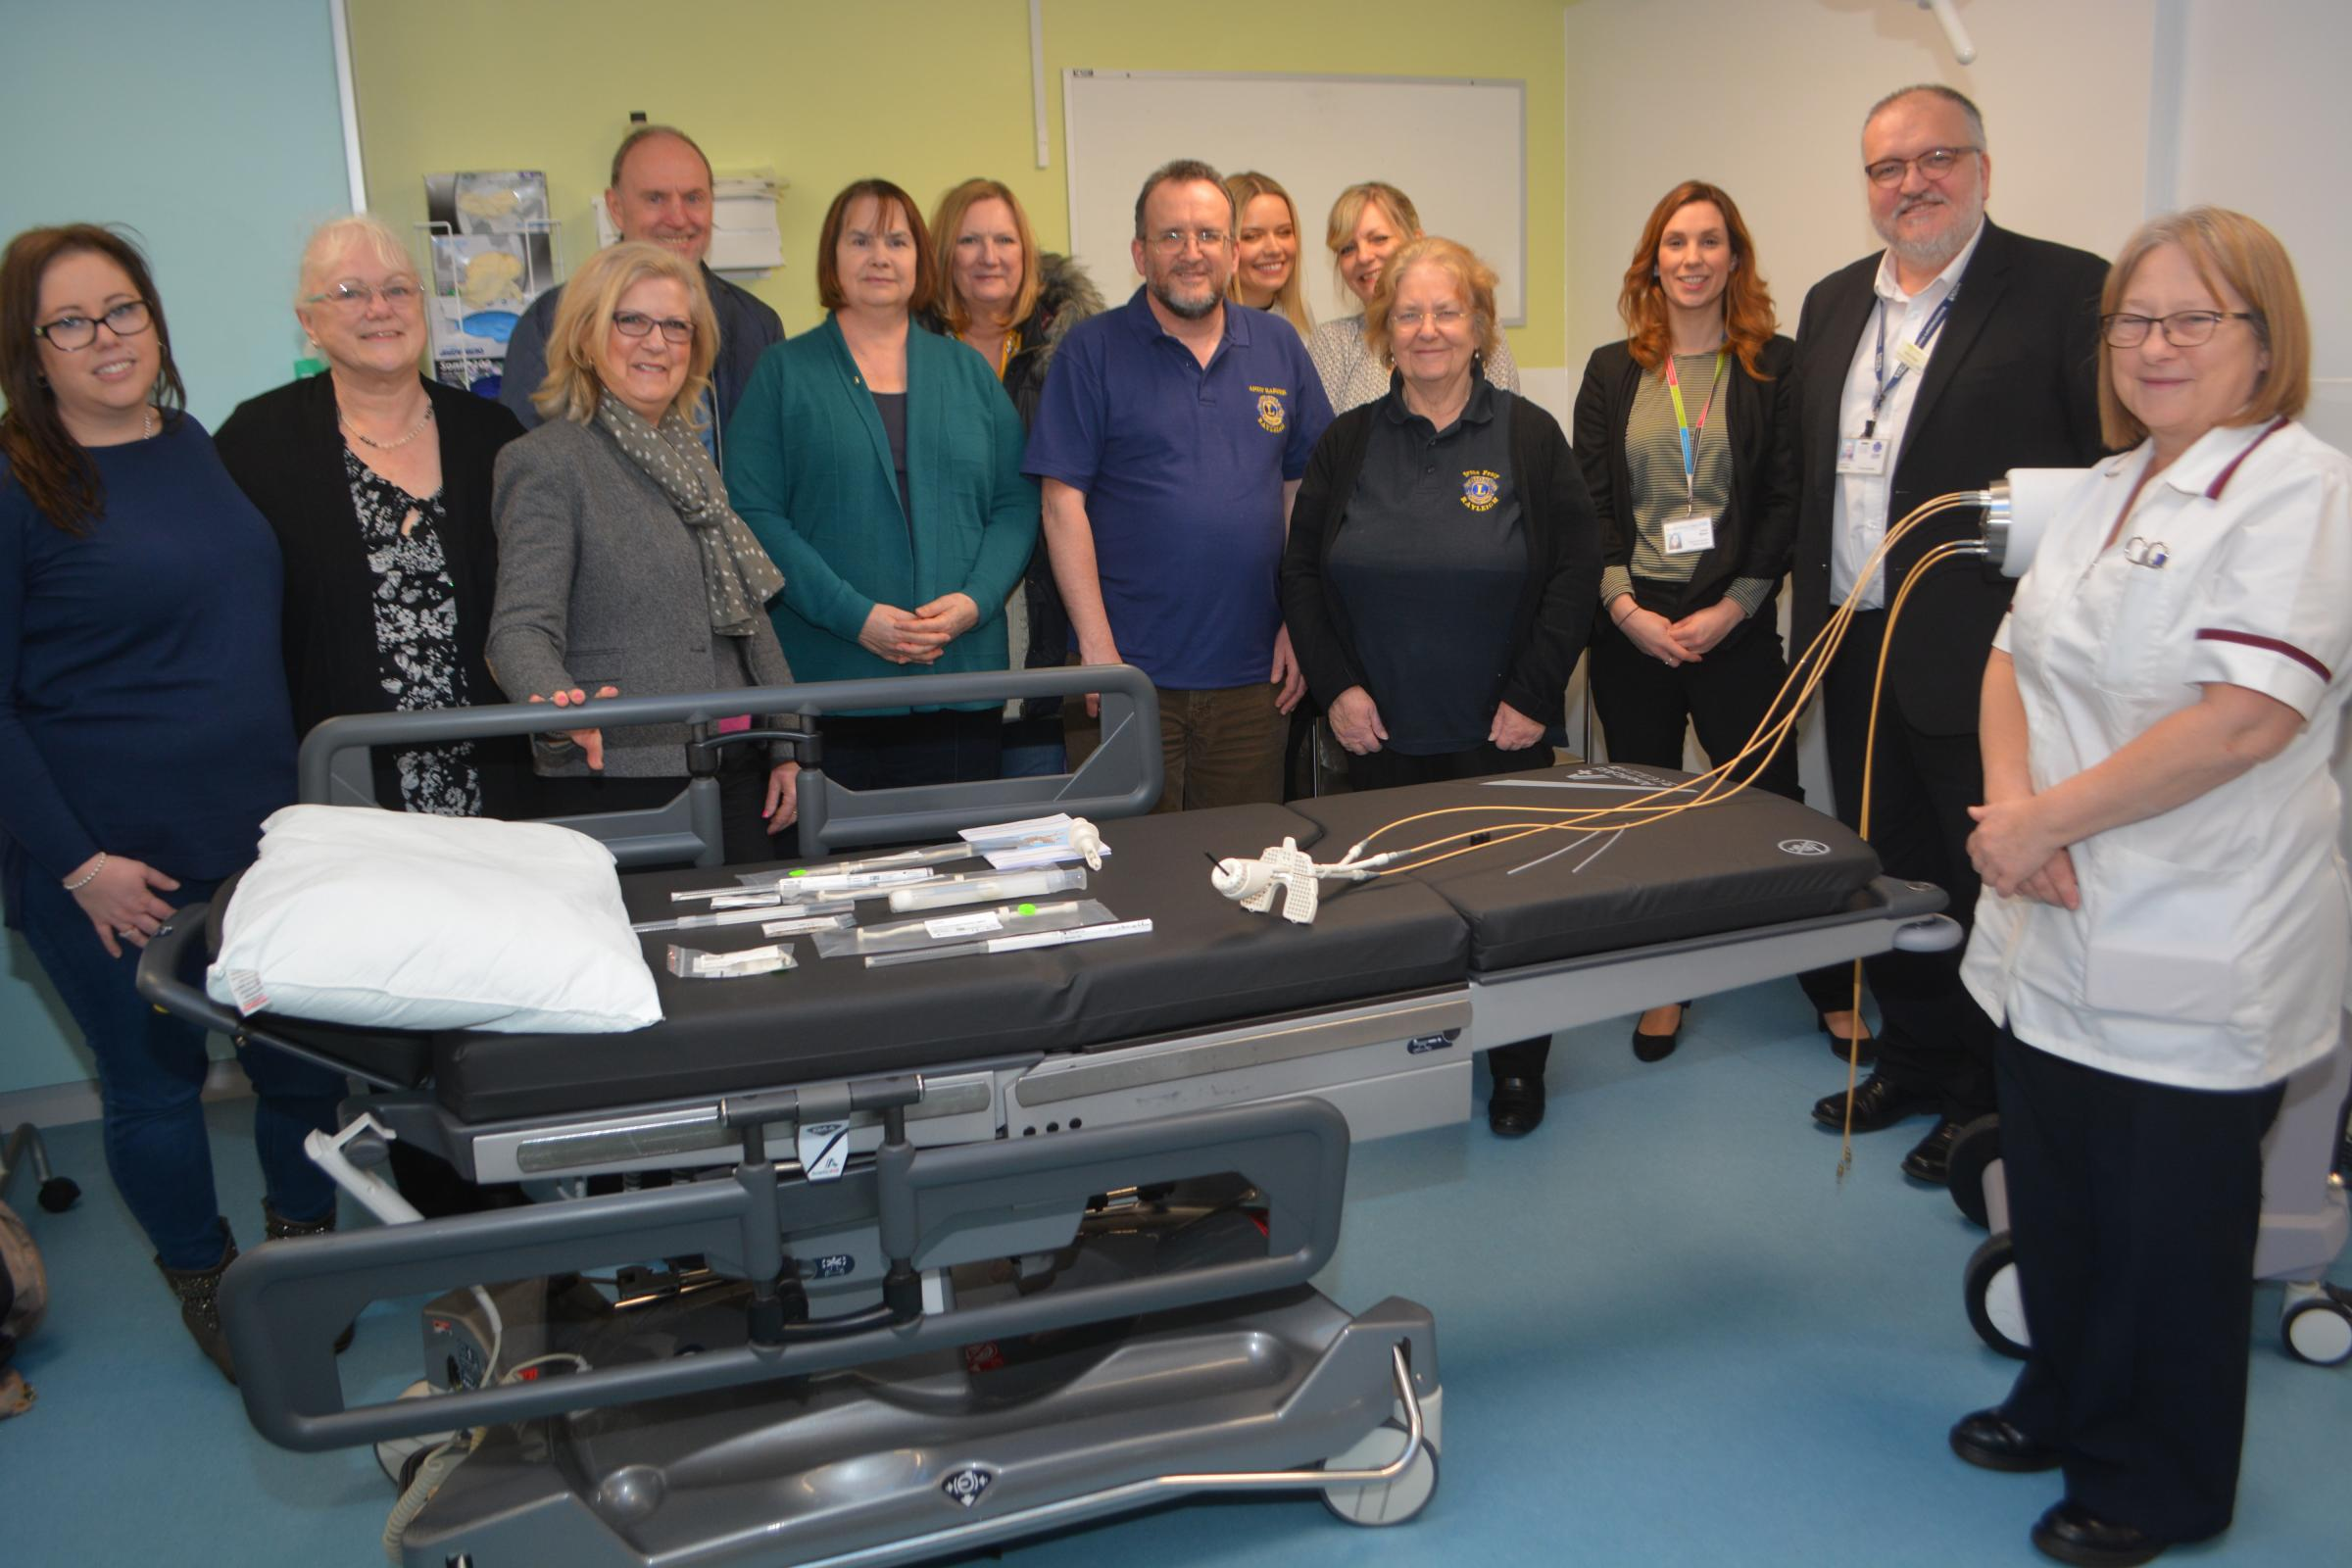 Fundraising - Southend University Hospital is the first Trust in the country to use a £30,000 state-of the-art Venezia applicator for gynaecological cancer treatment